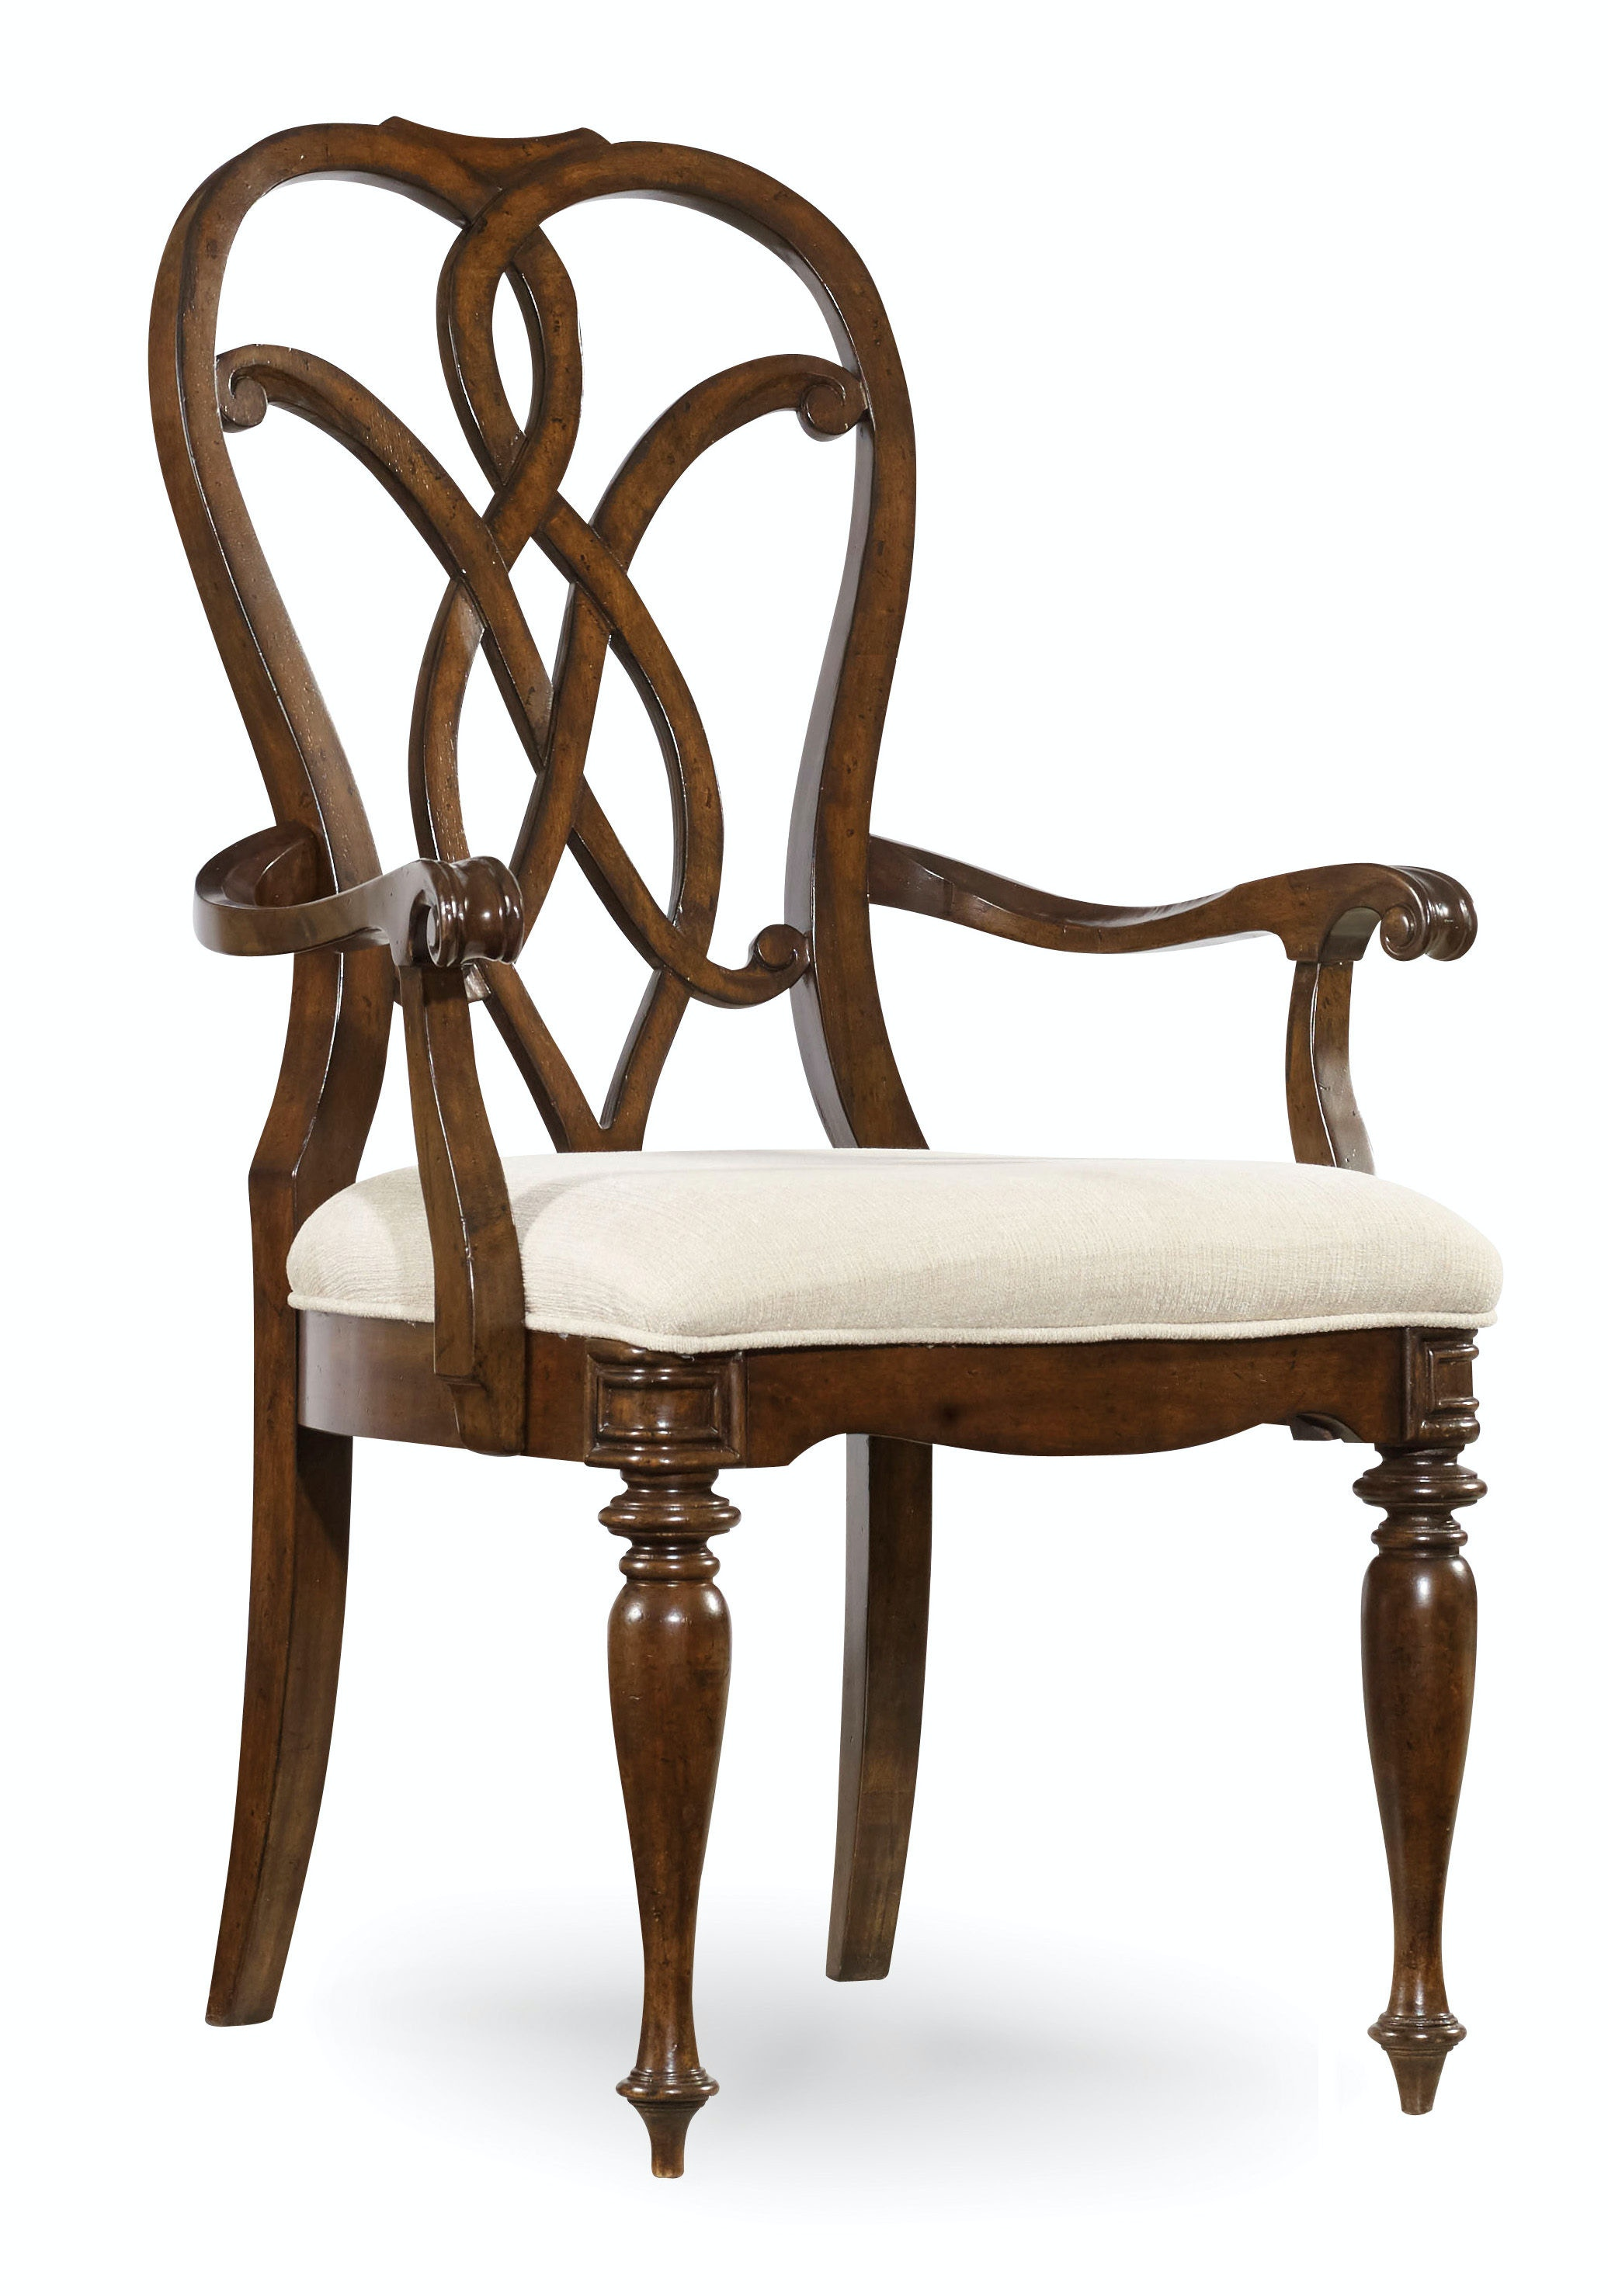 Hooker Furniture Leesburg Splatback Arm Chair 5381-75300